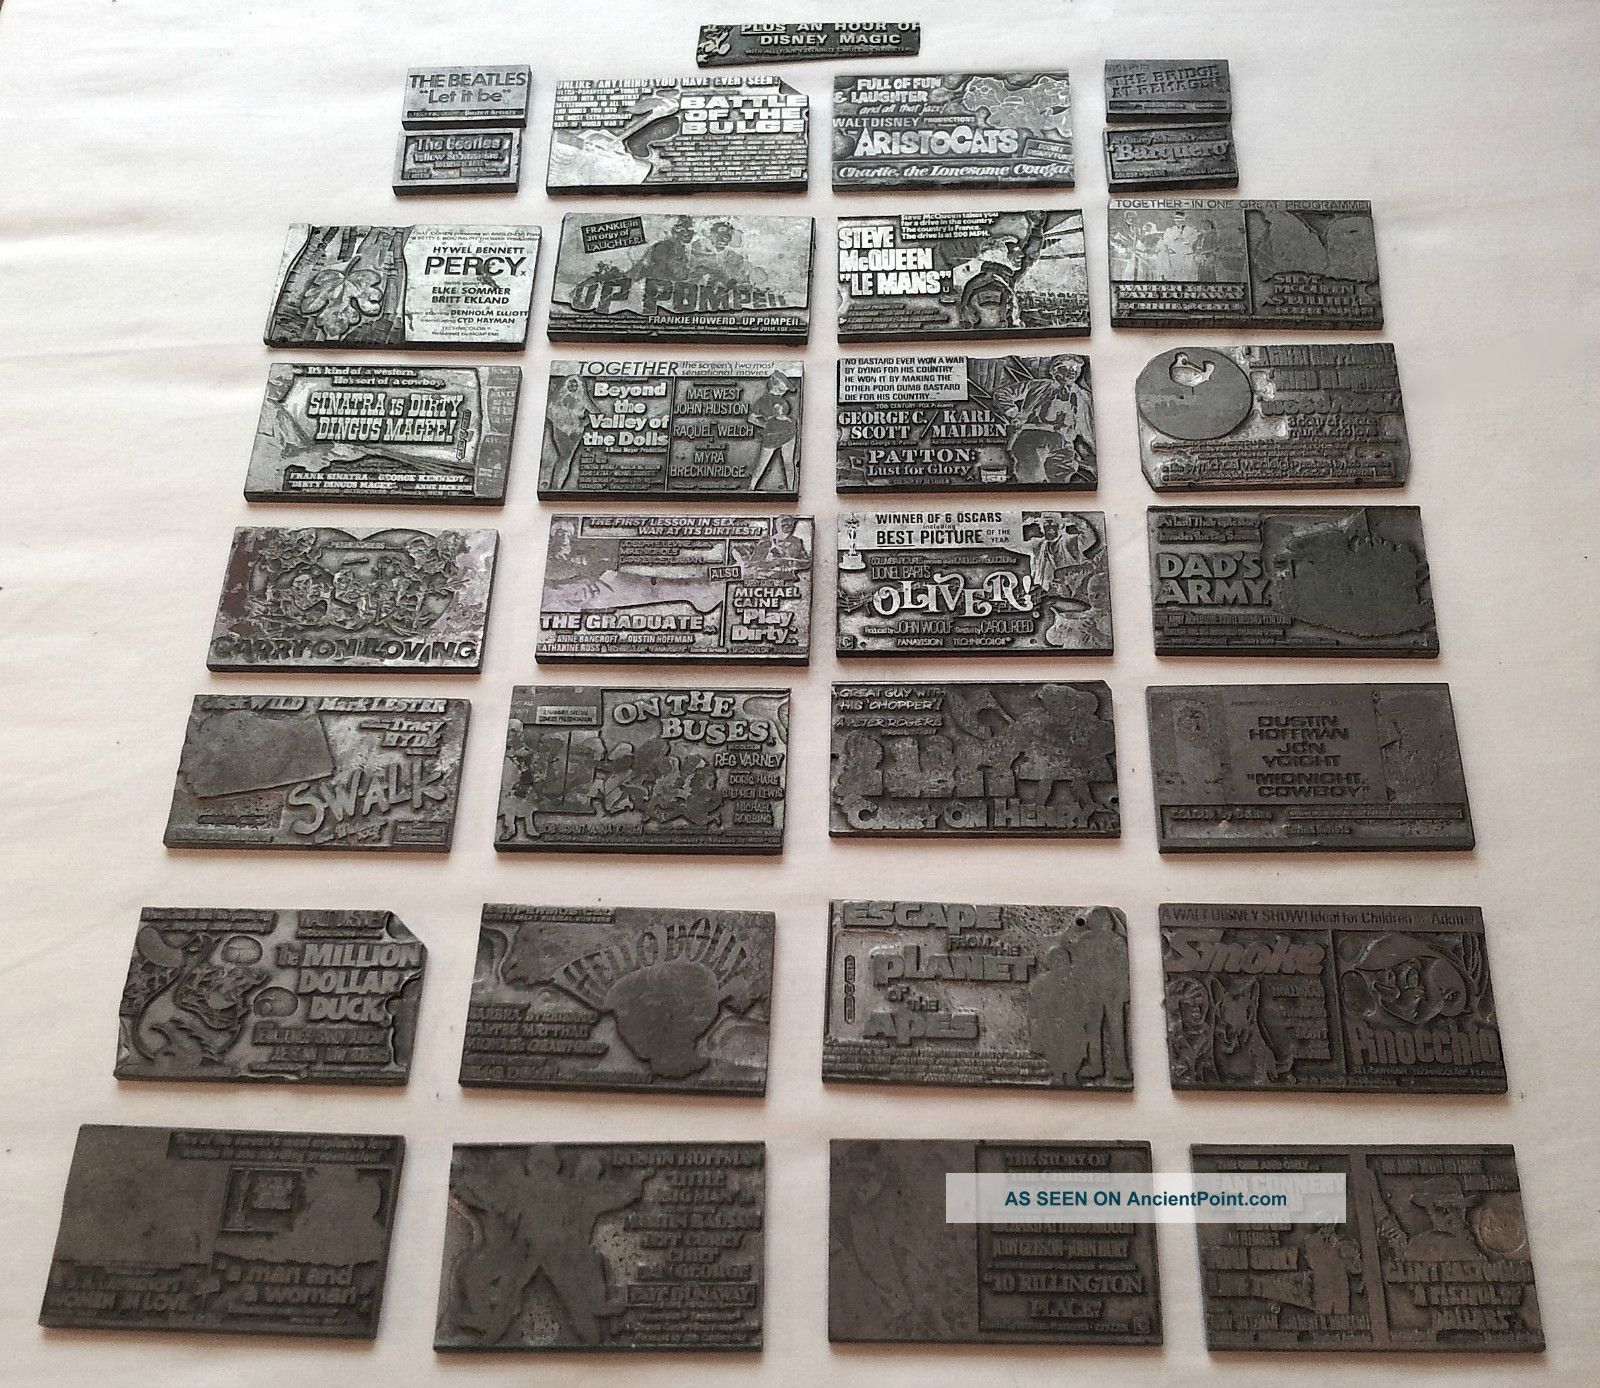 Old Metal Newspaper Printing Plates For Famous Movie Adverts • Very Collectable Uncategorized photo